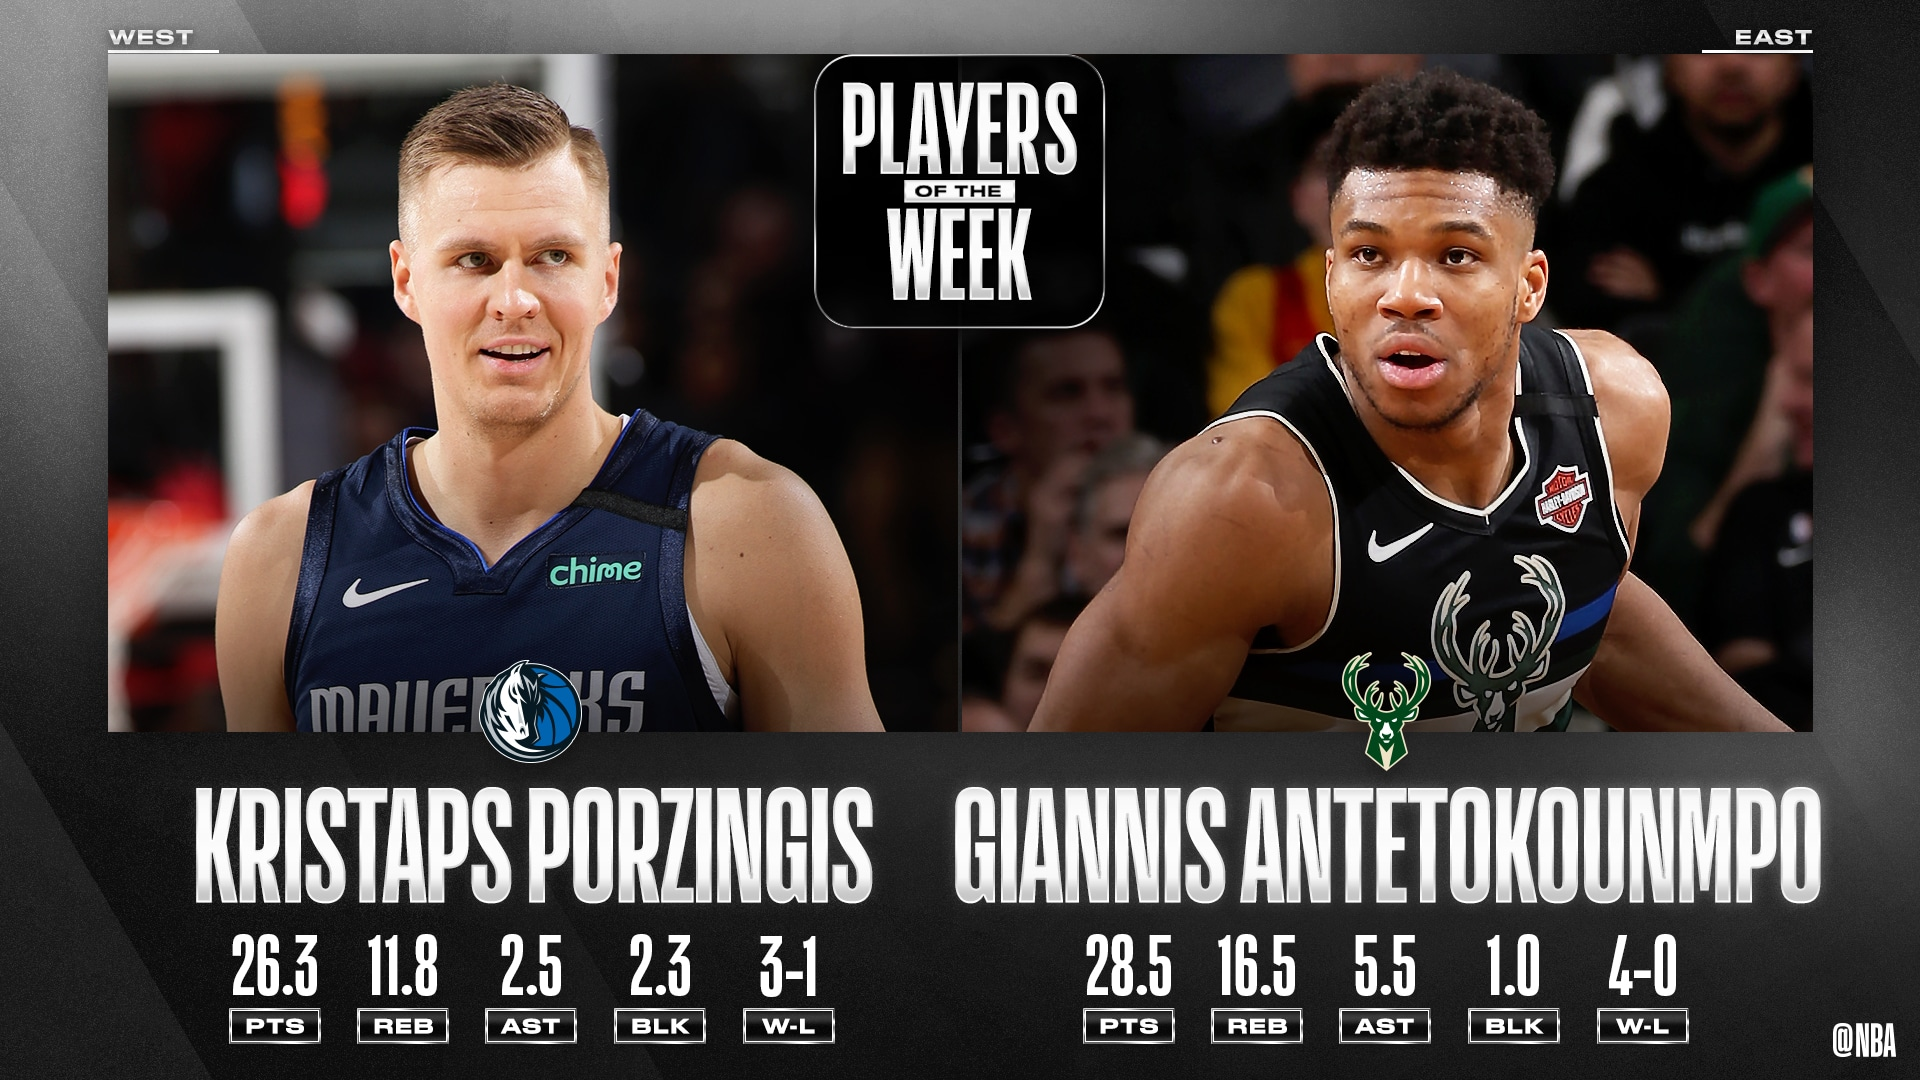 Kristaps Porzingis, Giannis Antetokounmpo named NBA Players of the Week